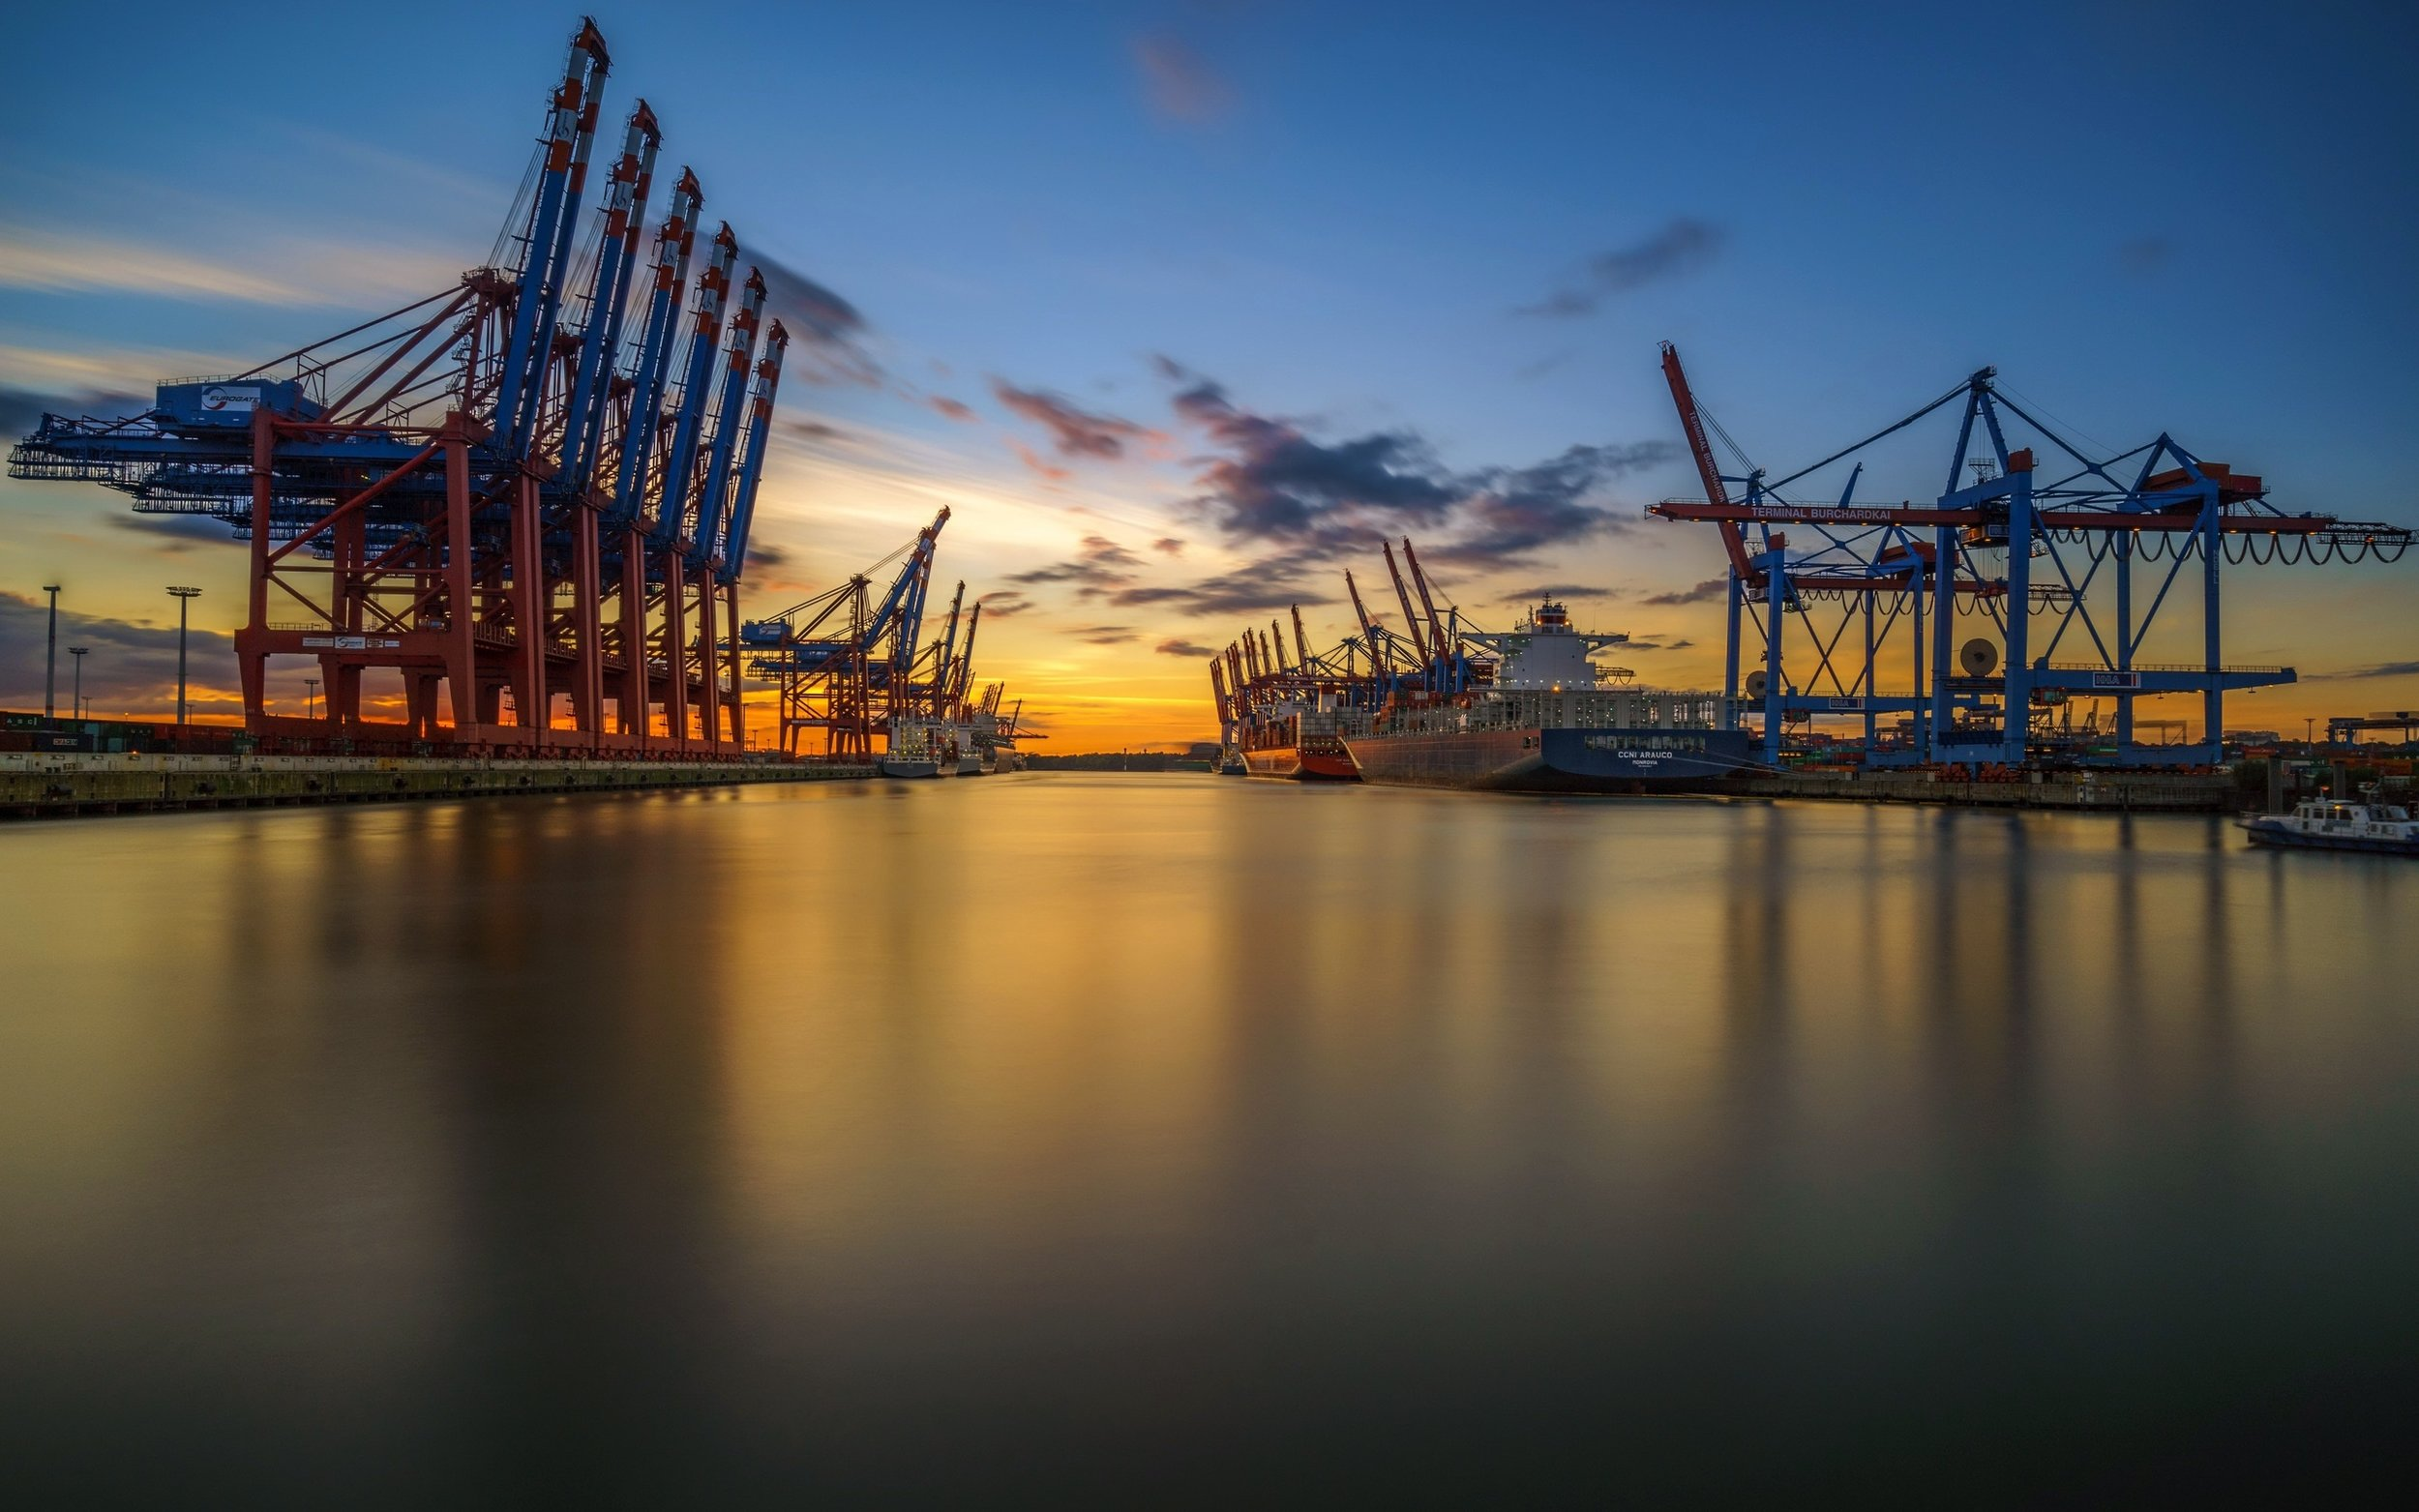 hamburg-port-cranes-sunset-cargo-ships.jpg